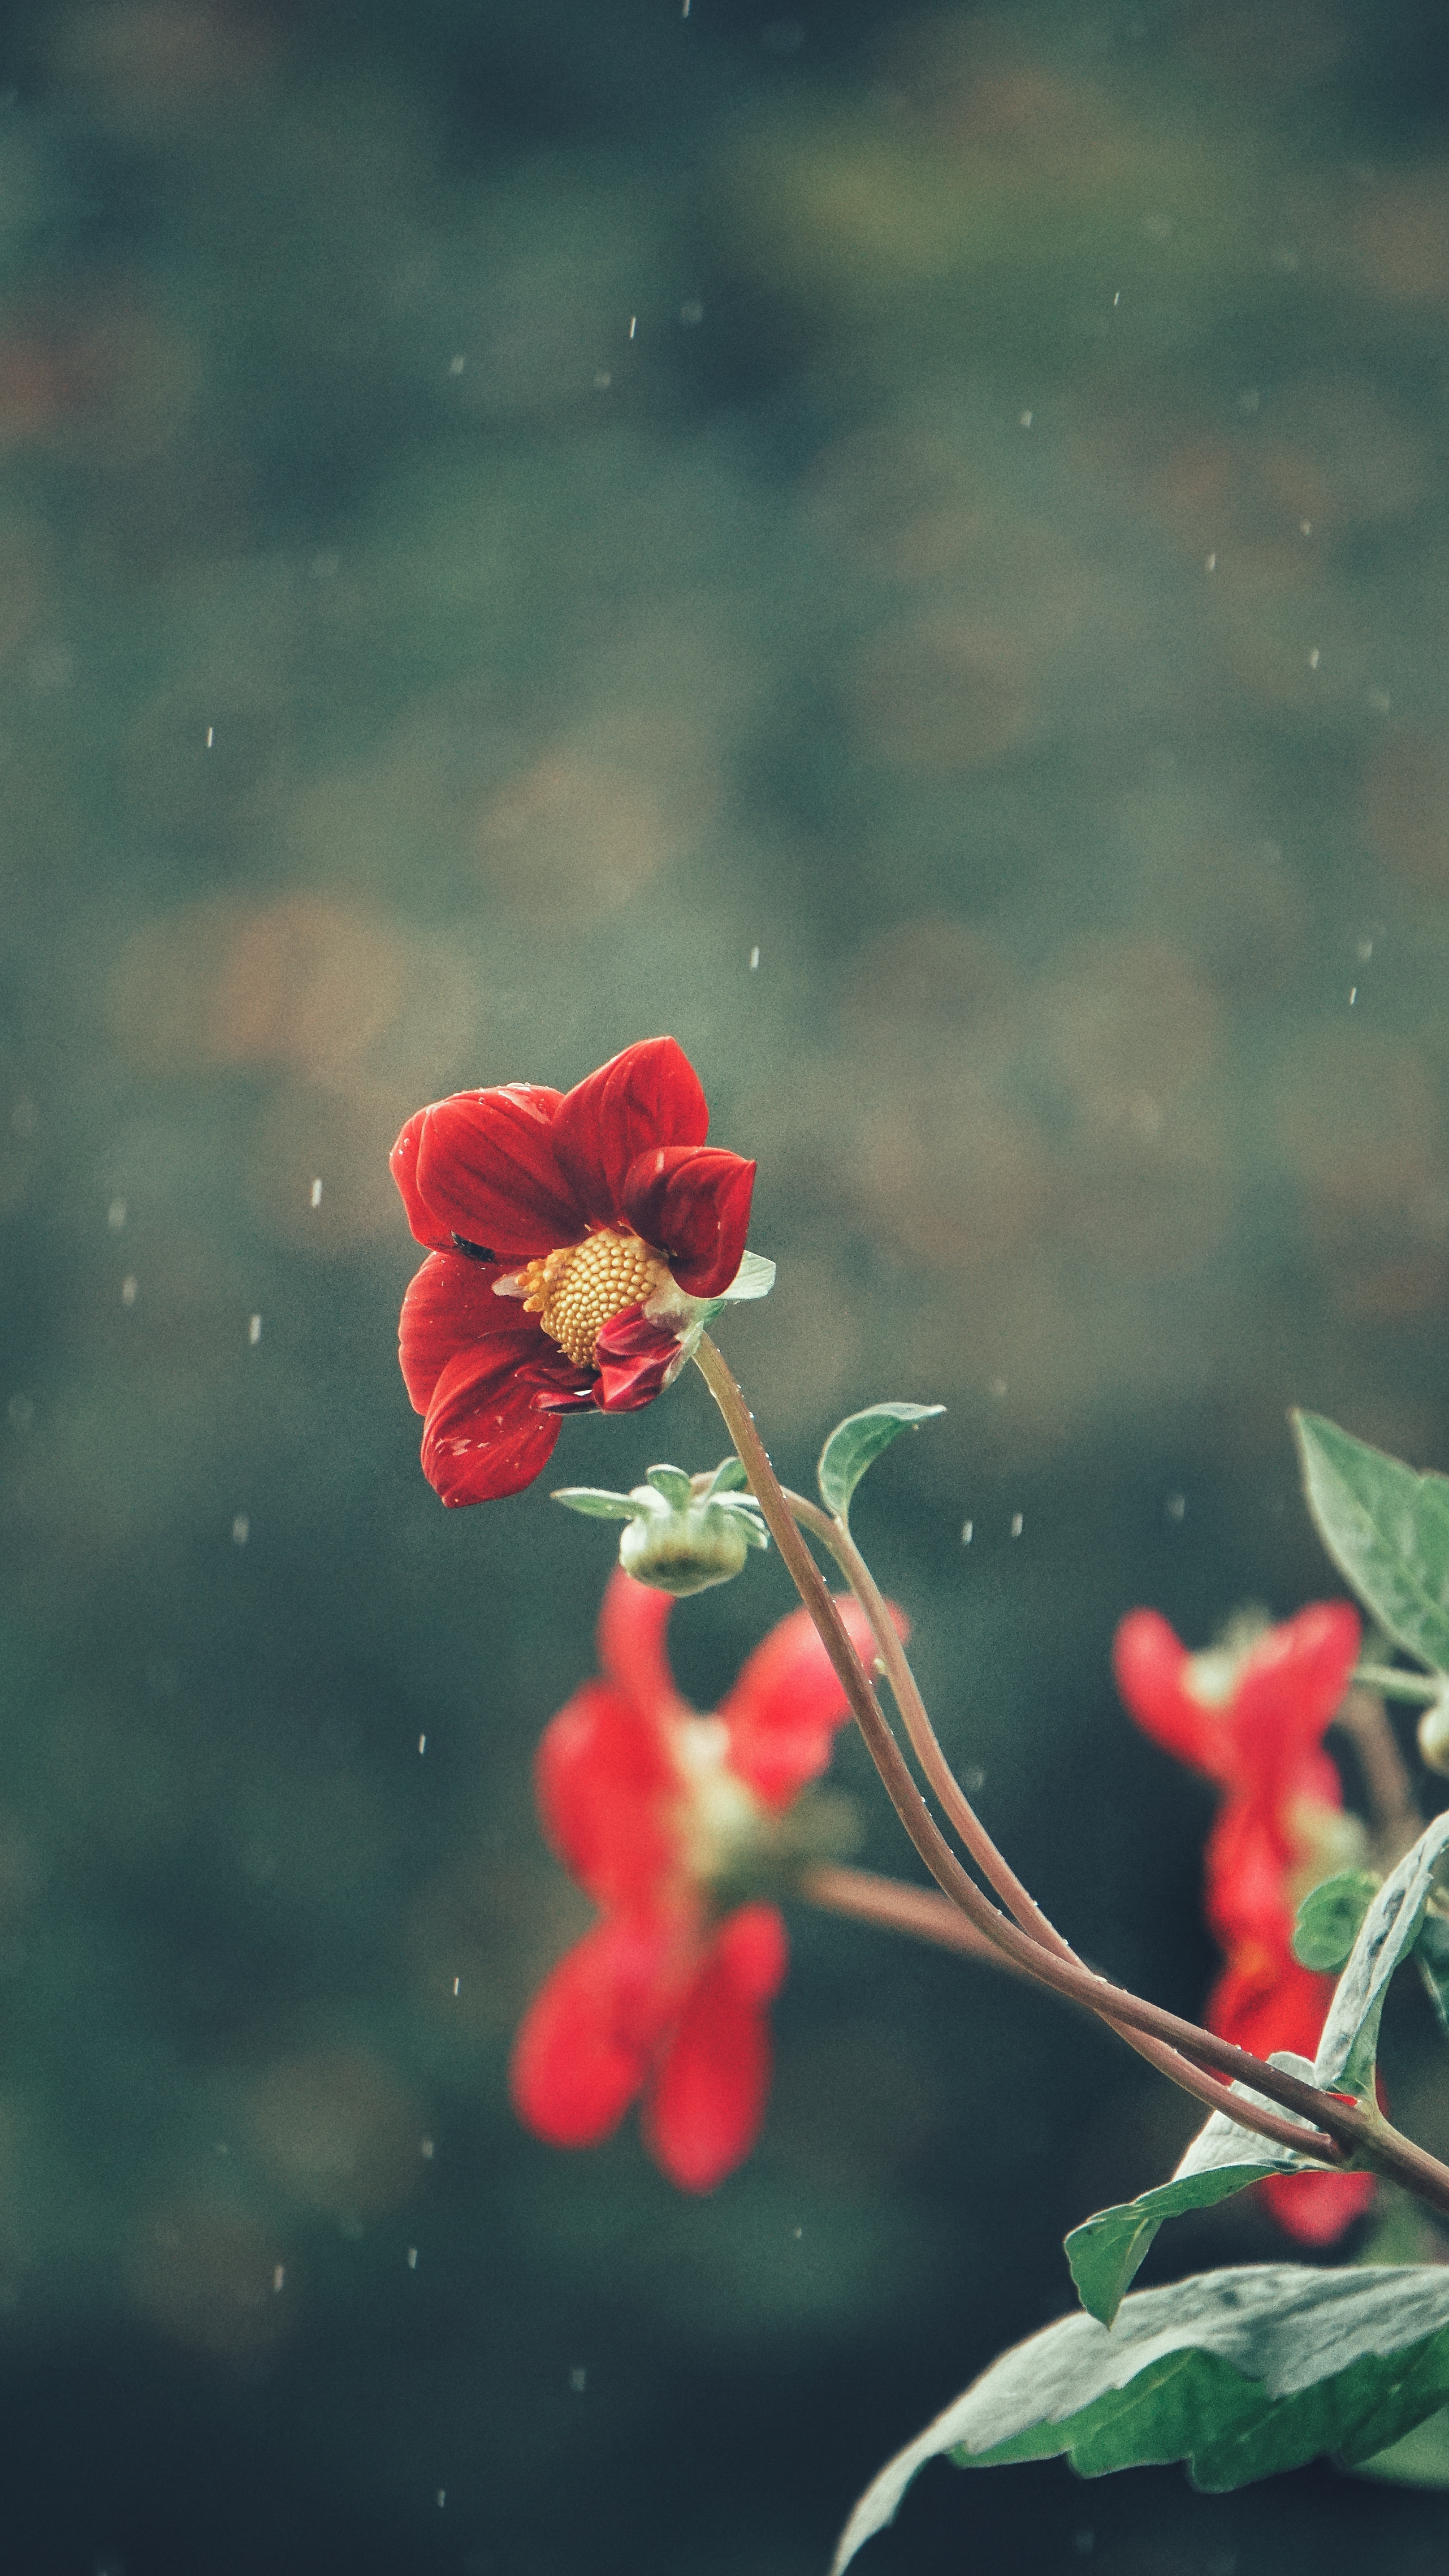 red flower in shallow focus photography